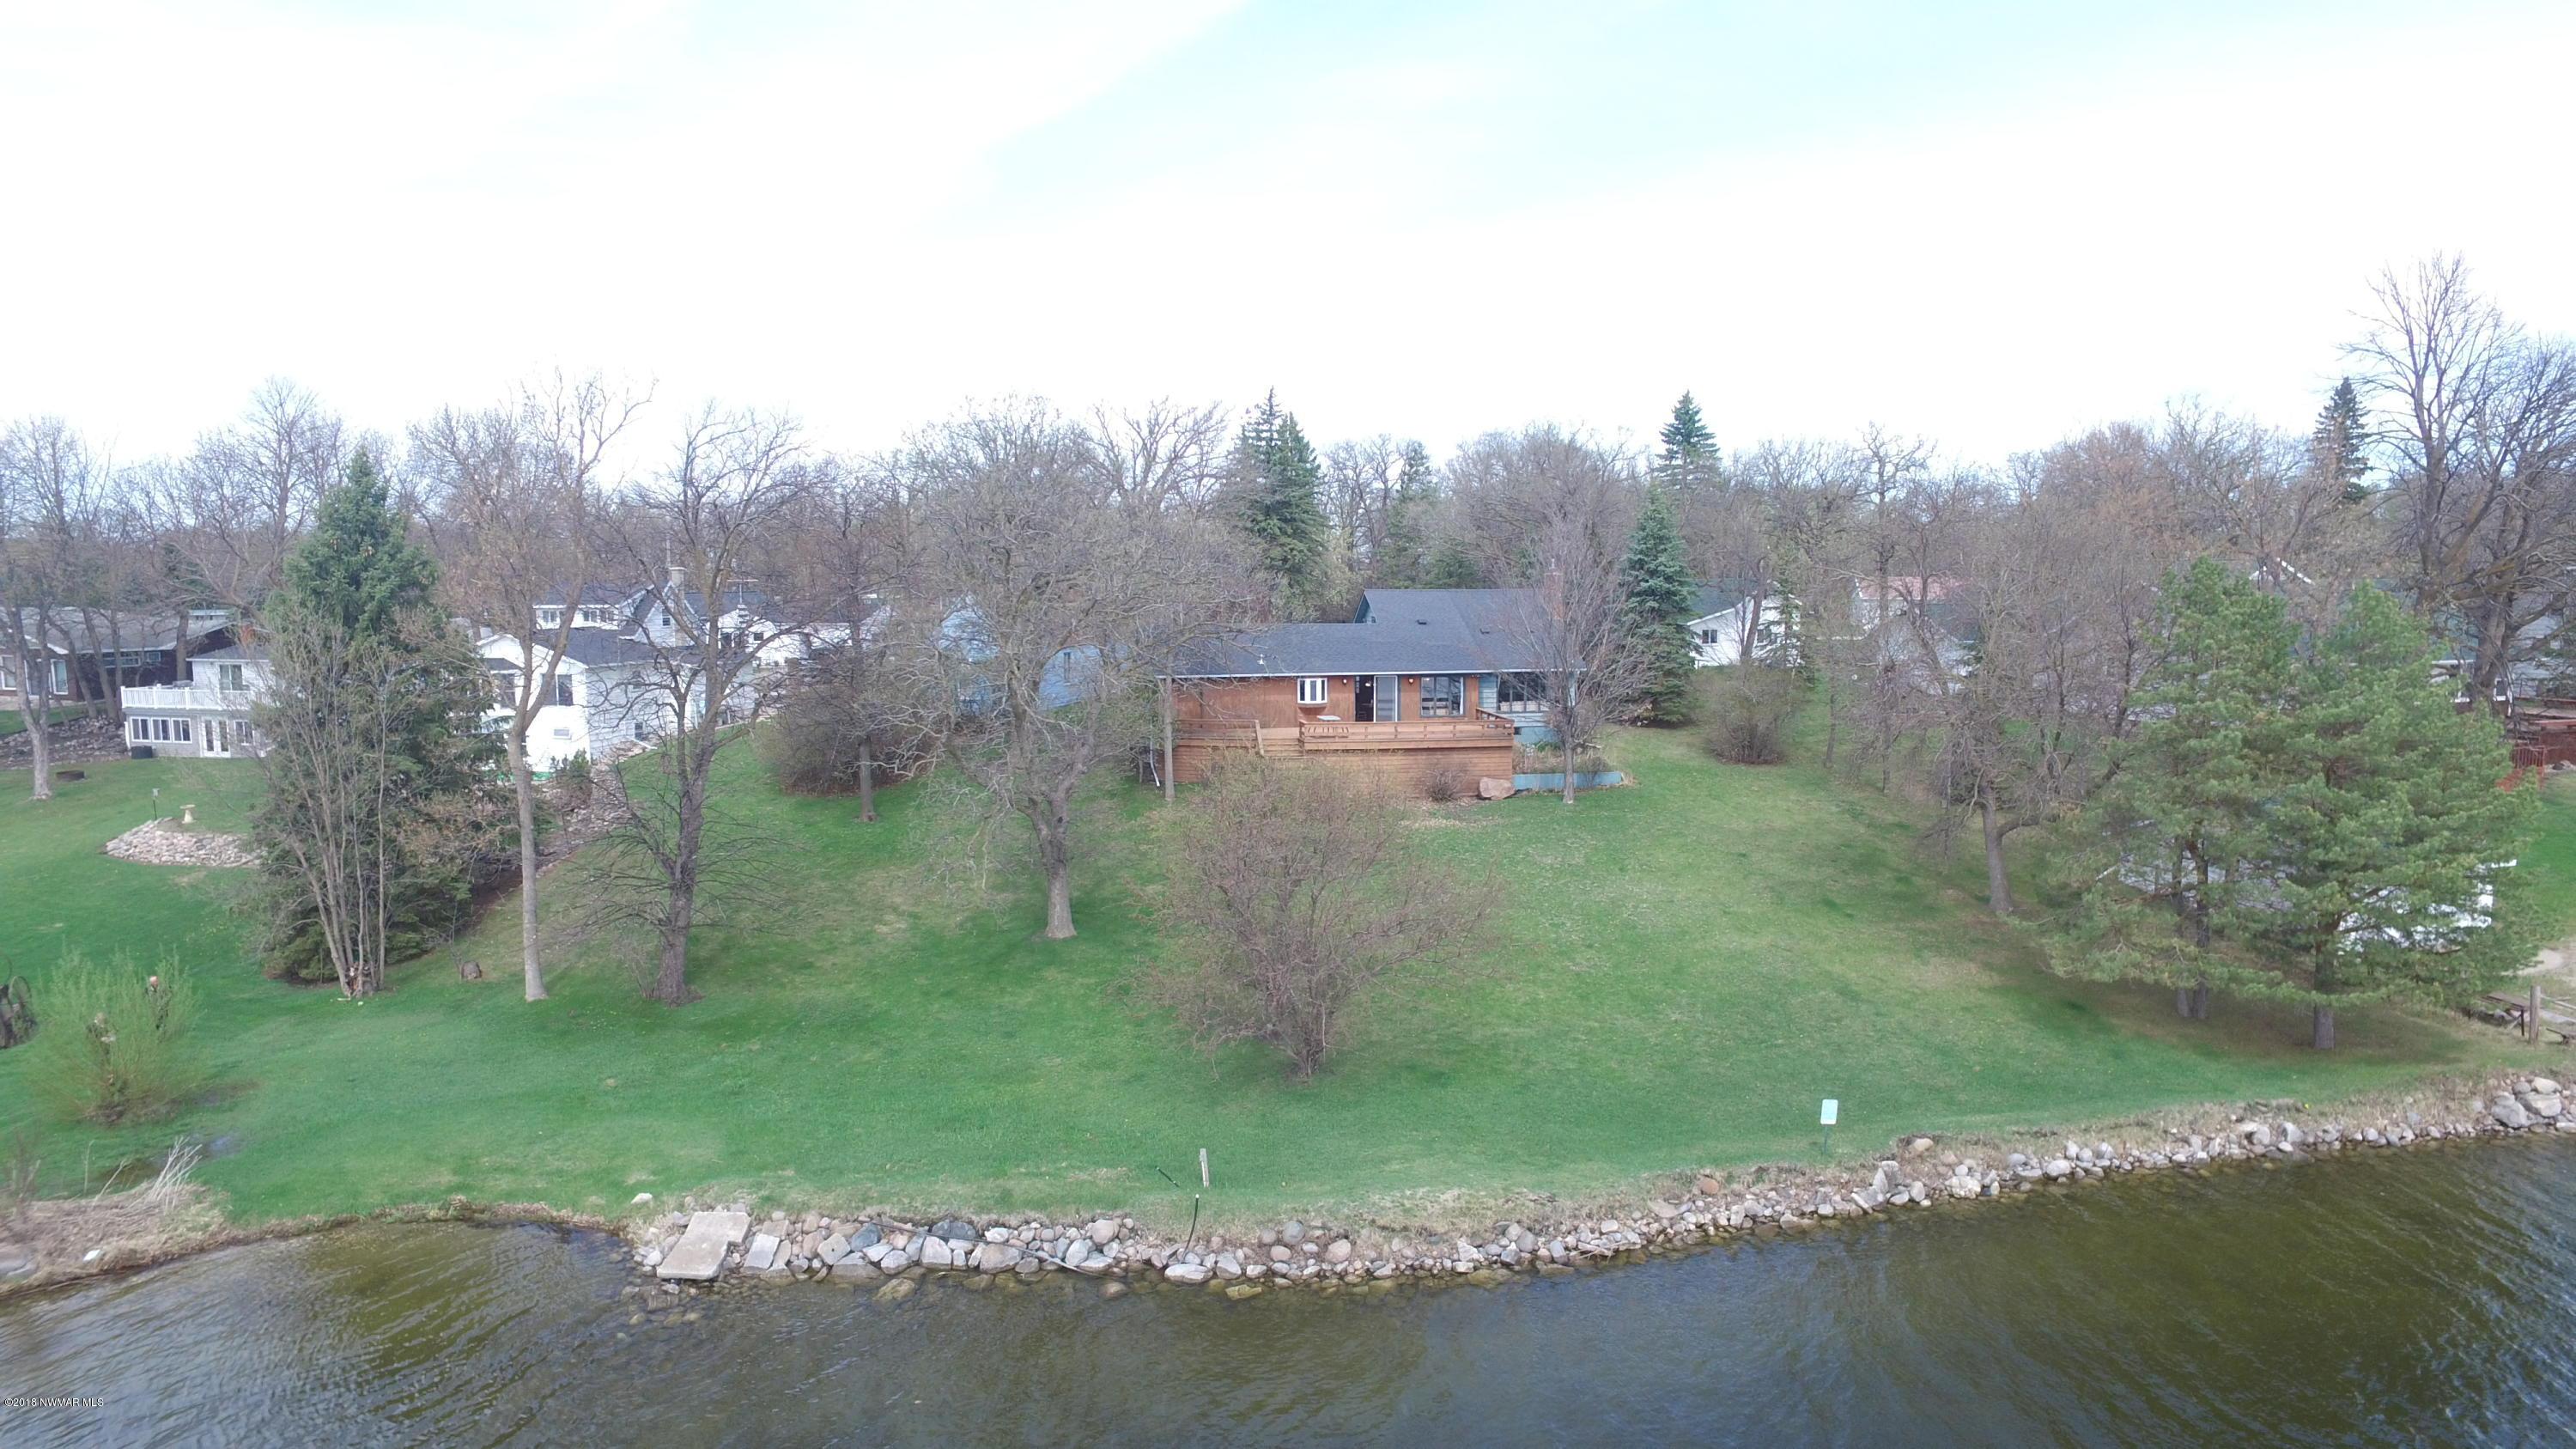 Stunning property set on 212 feet of Maple Lake shoreline. Enjoy hard bottom lakeshore and large boulder retaining wall, there is little left to do with this property but enjoy the lake!